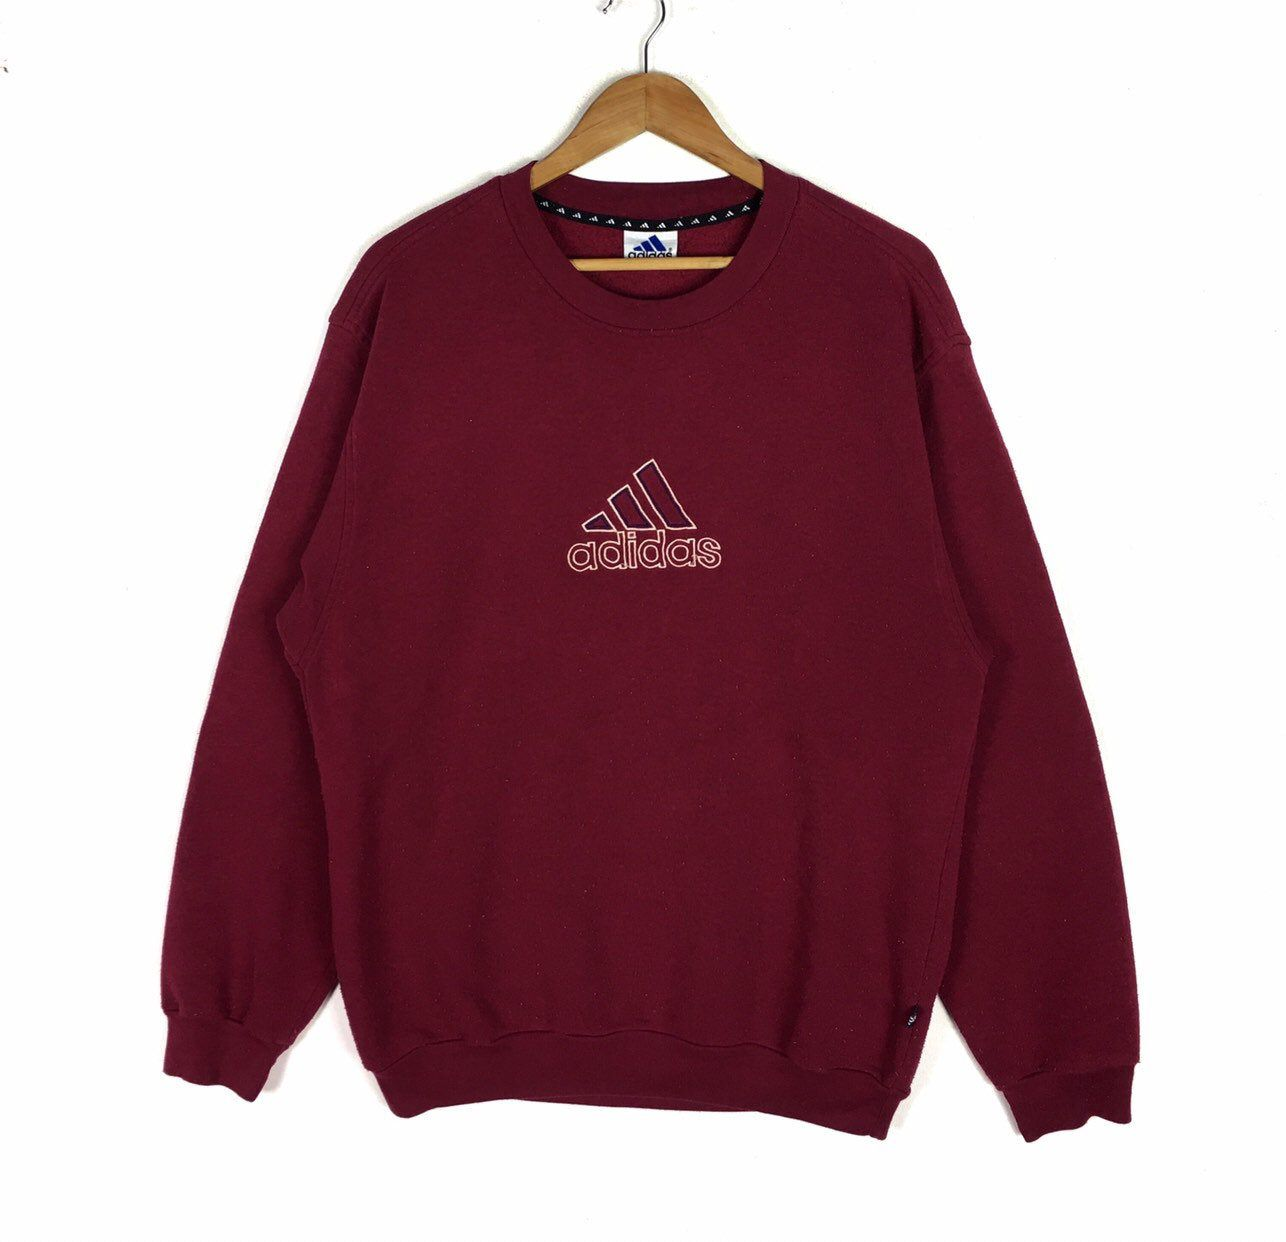 Excited To Share This Item From My Etsy Shop Vintage Adidas Big Logo Embroidery Sweatshirt L Size Vintage Adidas Sweatshirts Embroidery Sweatshirt [ 1242 x 1286 Pixel ]